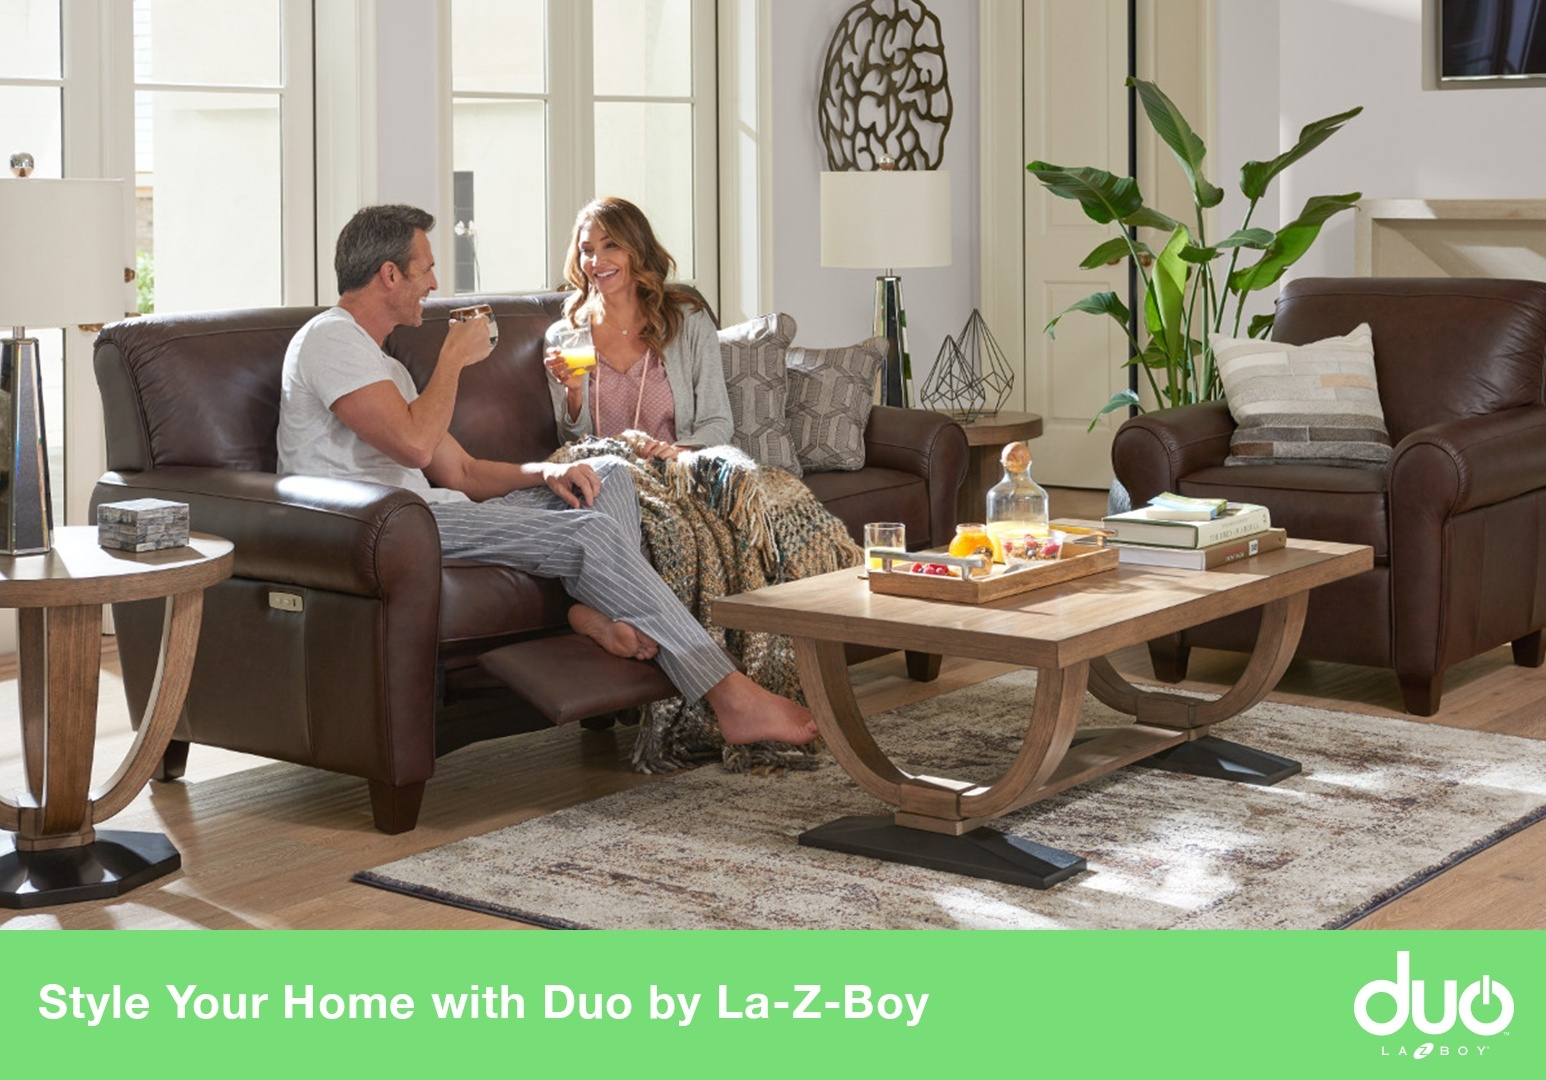 Get Started with the La-Z-Boy In-Home Design Program